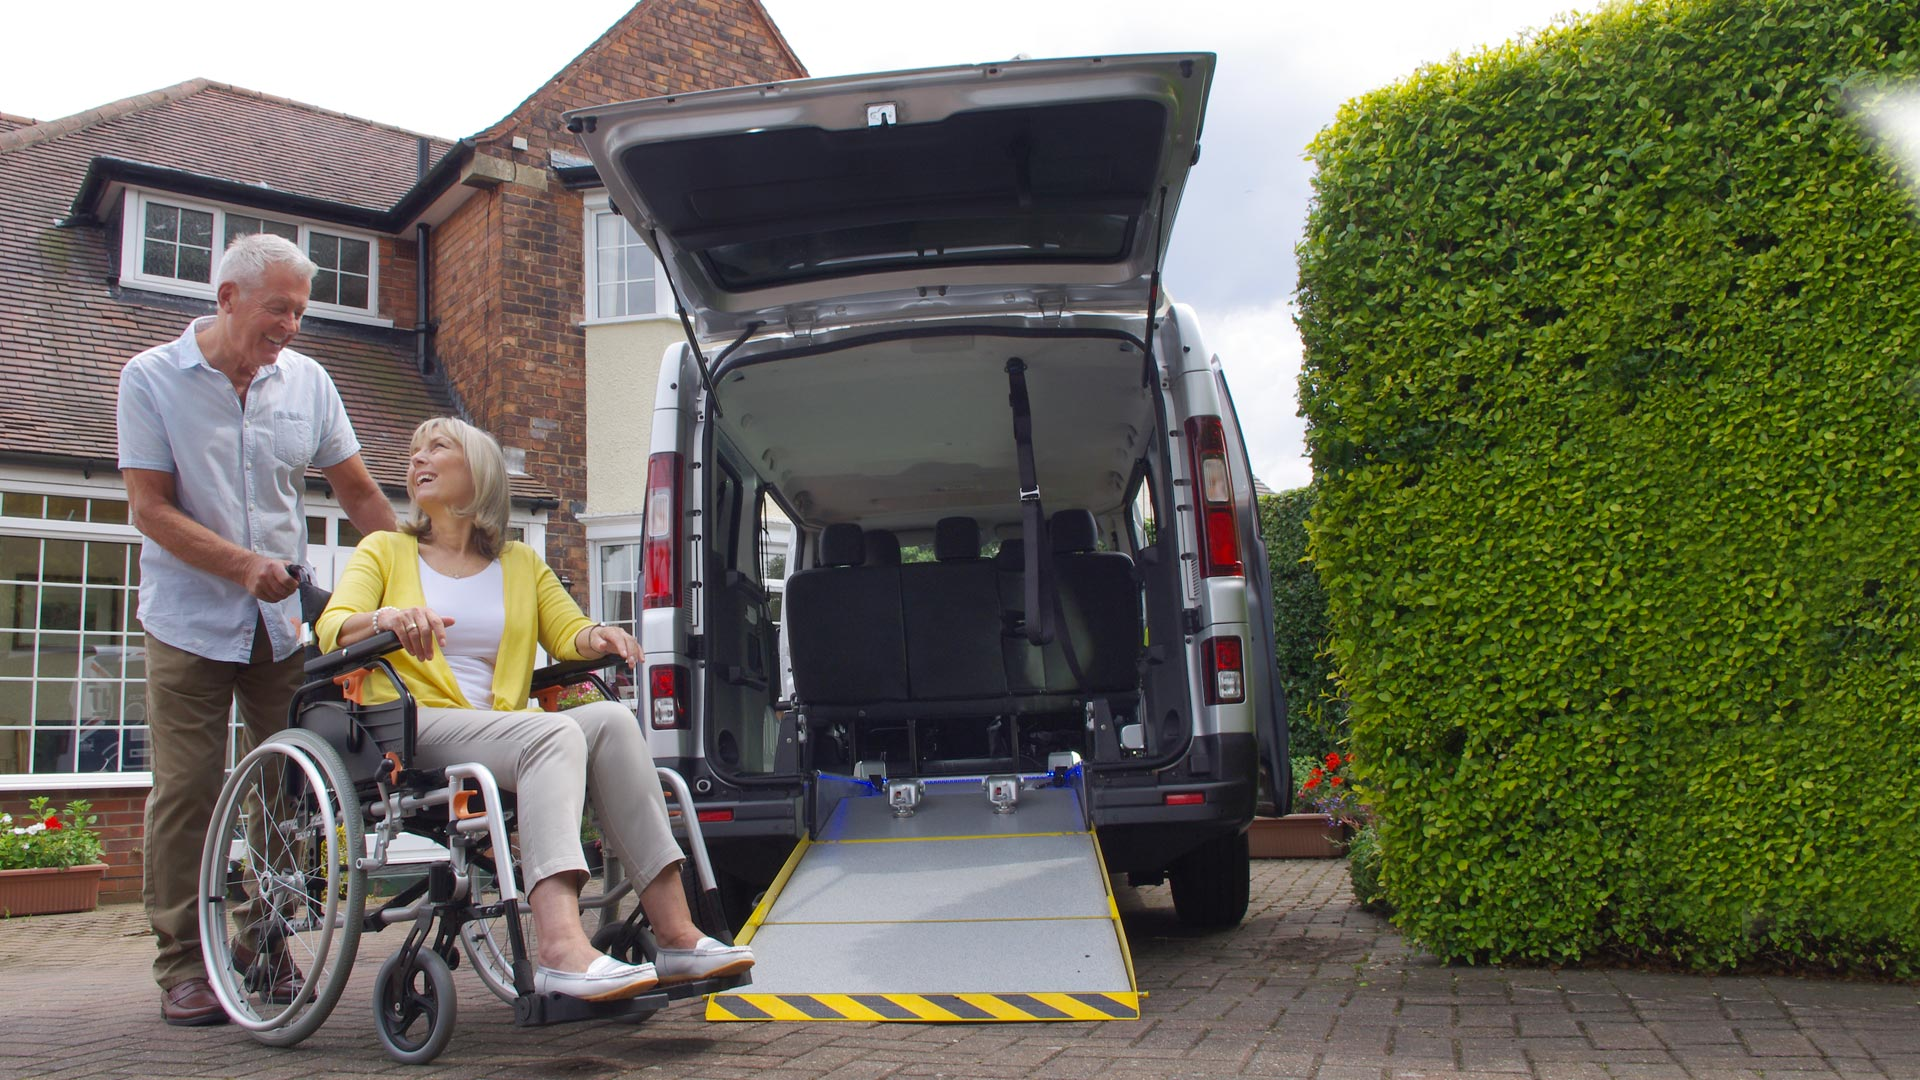 Wheelchair accessible vehicles from a name you can trust